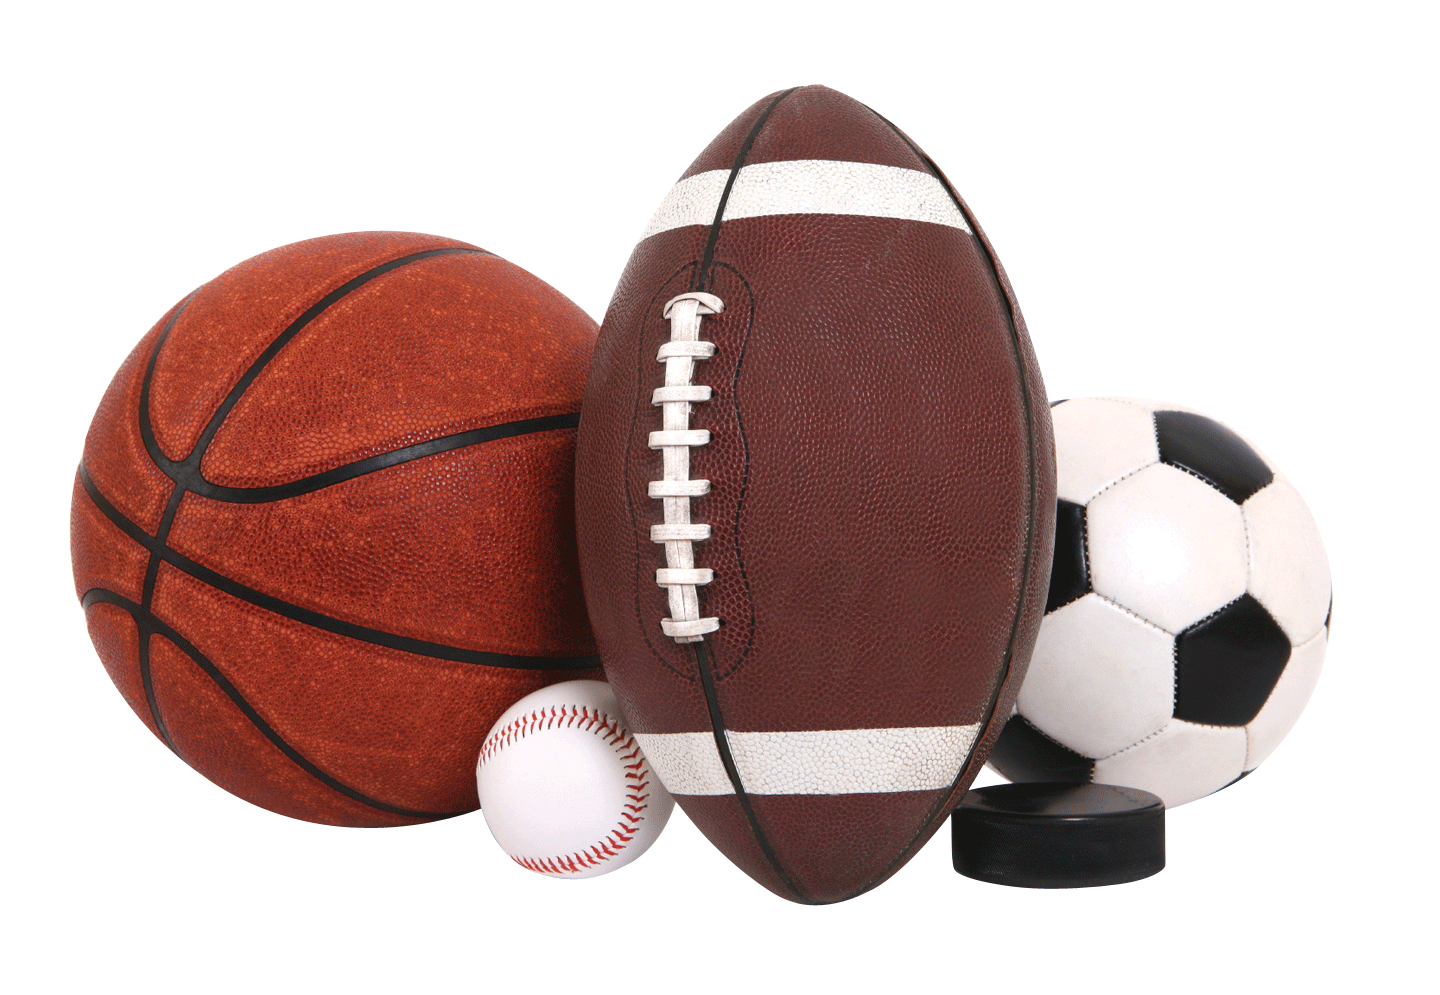 sports equipment football ball clipart basketball sport athletes retired background finished baseball soccer hockey sporting balls youth medicine festival rams